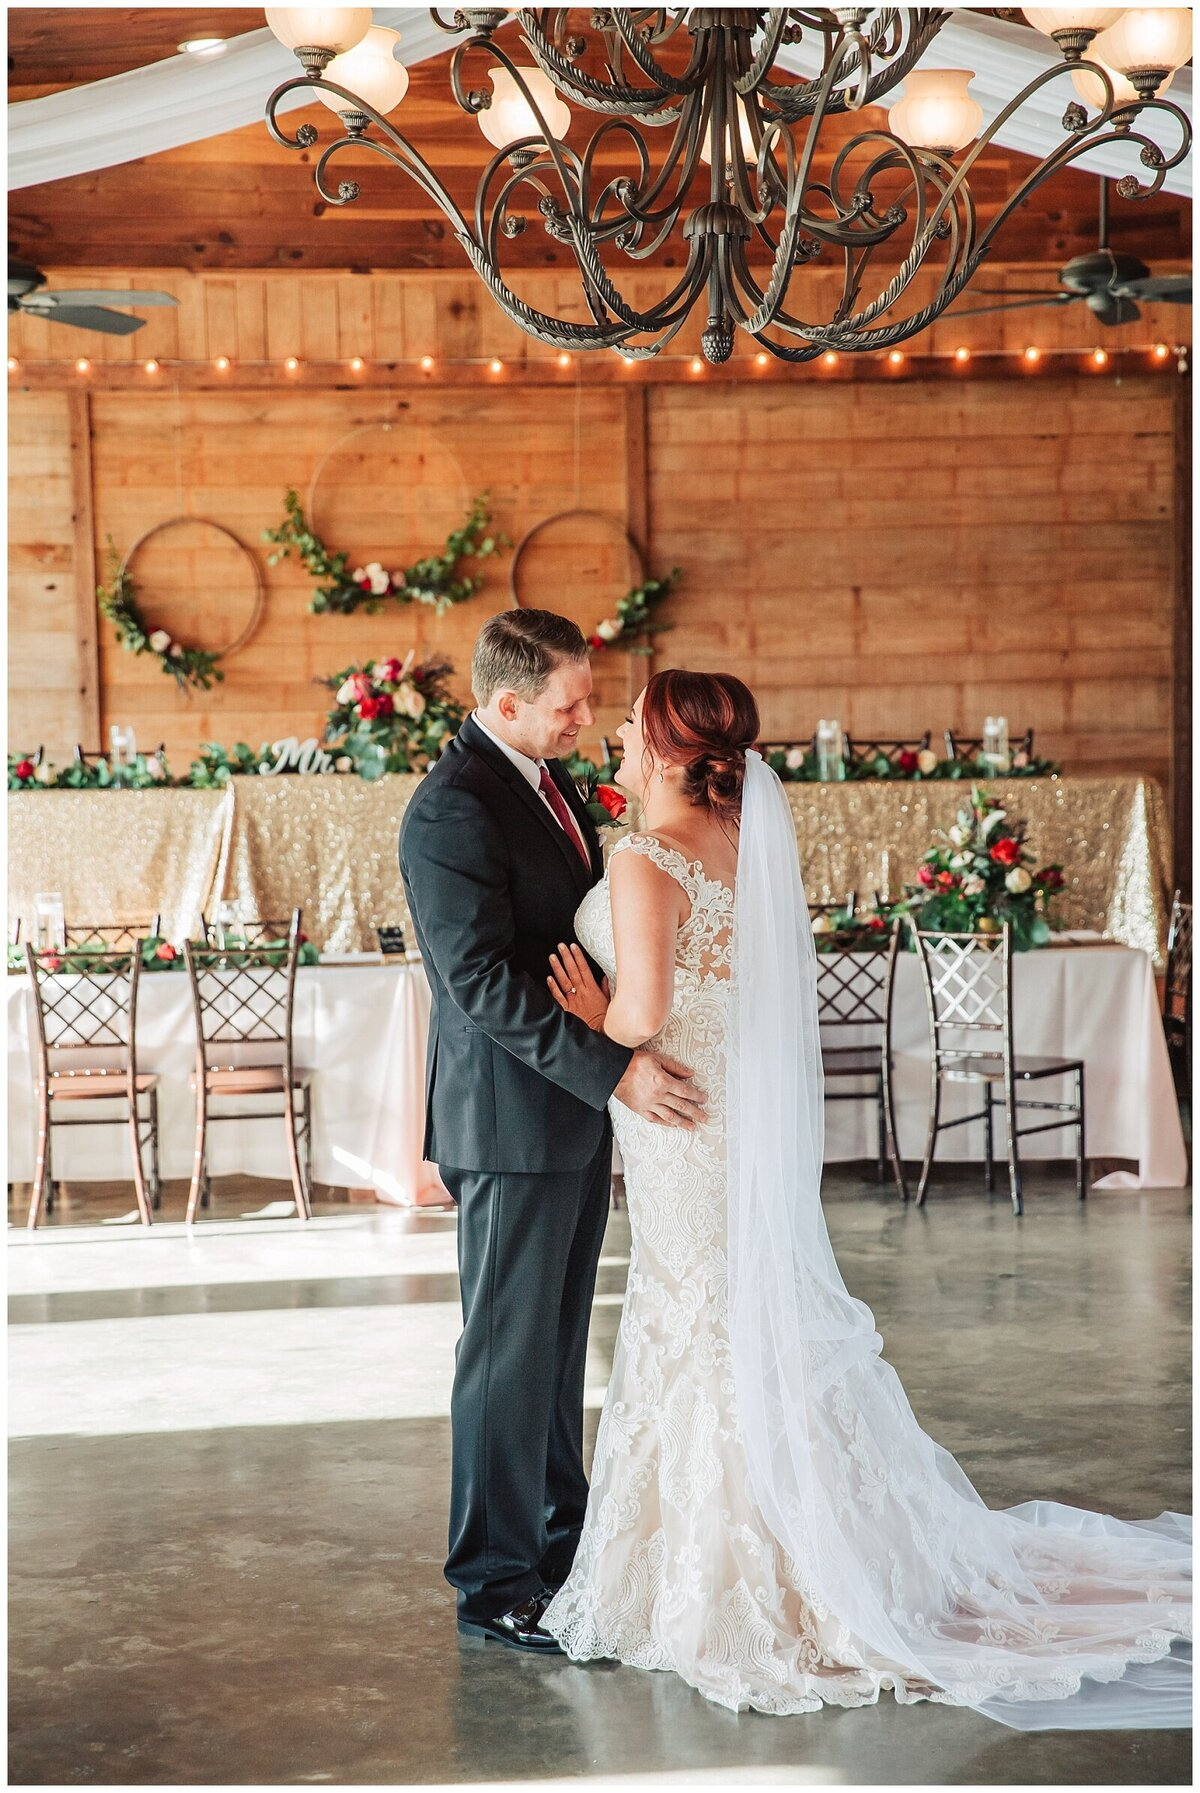 Rustic Burgundy and Blush Indoor Outdoor Wedding at Emery's Buffalo Creek - Houston Wedding Venue_0668